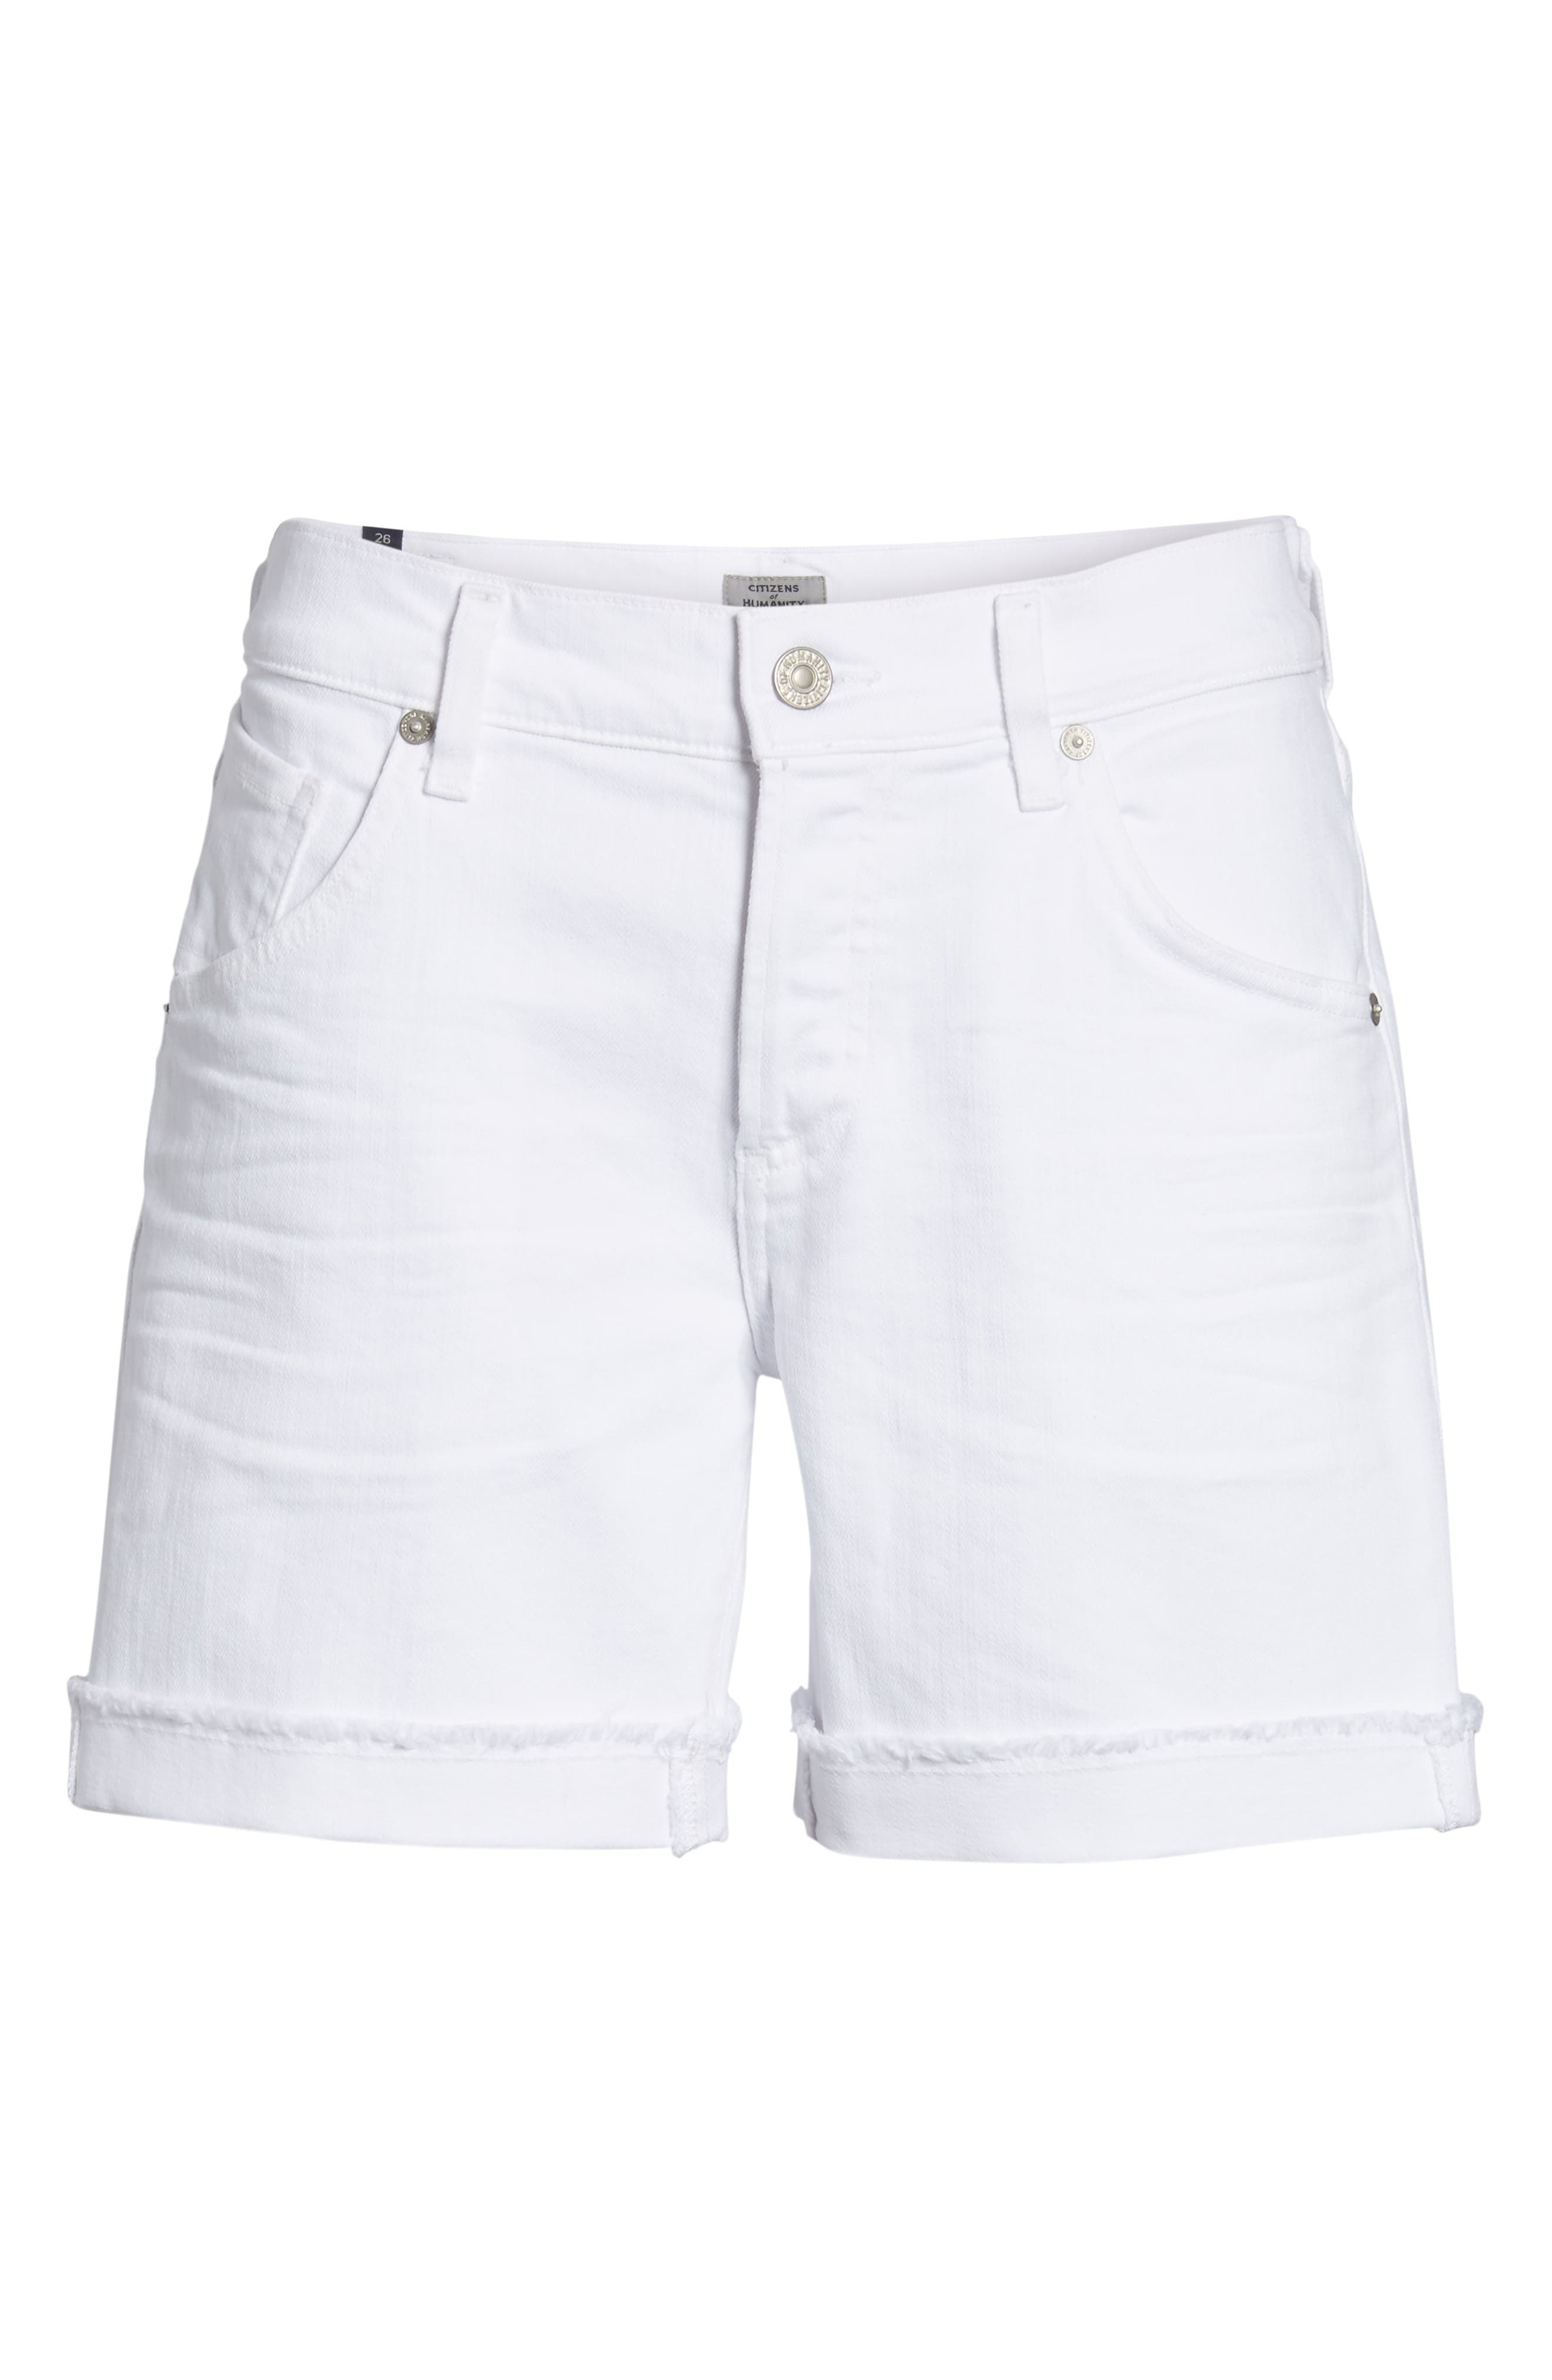 CITIZENS OF HUMANITY, Skyler Denim Shorts, Alternate thumbnail 6, color, OPTIC WHITE